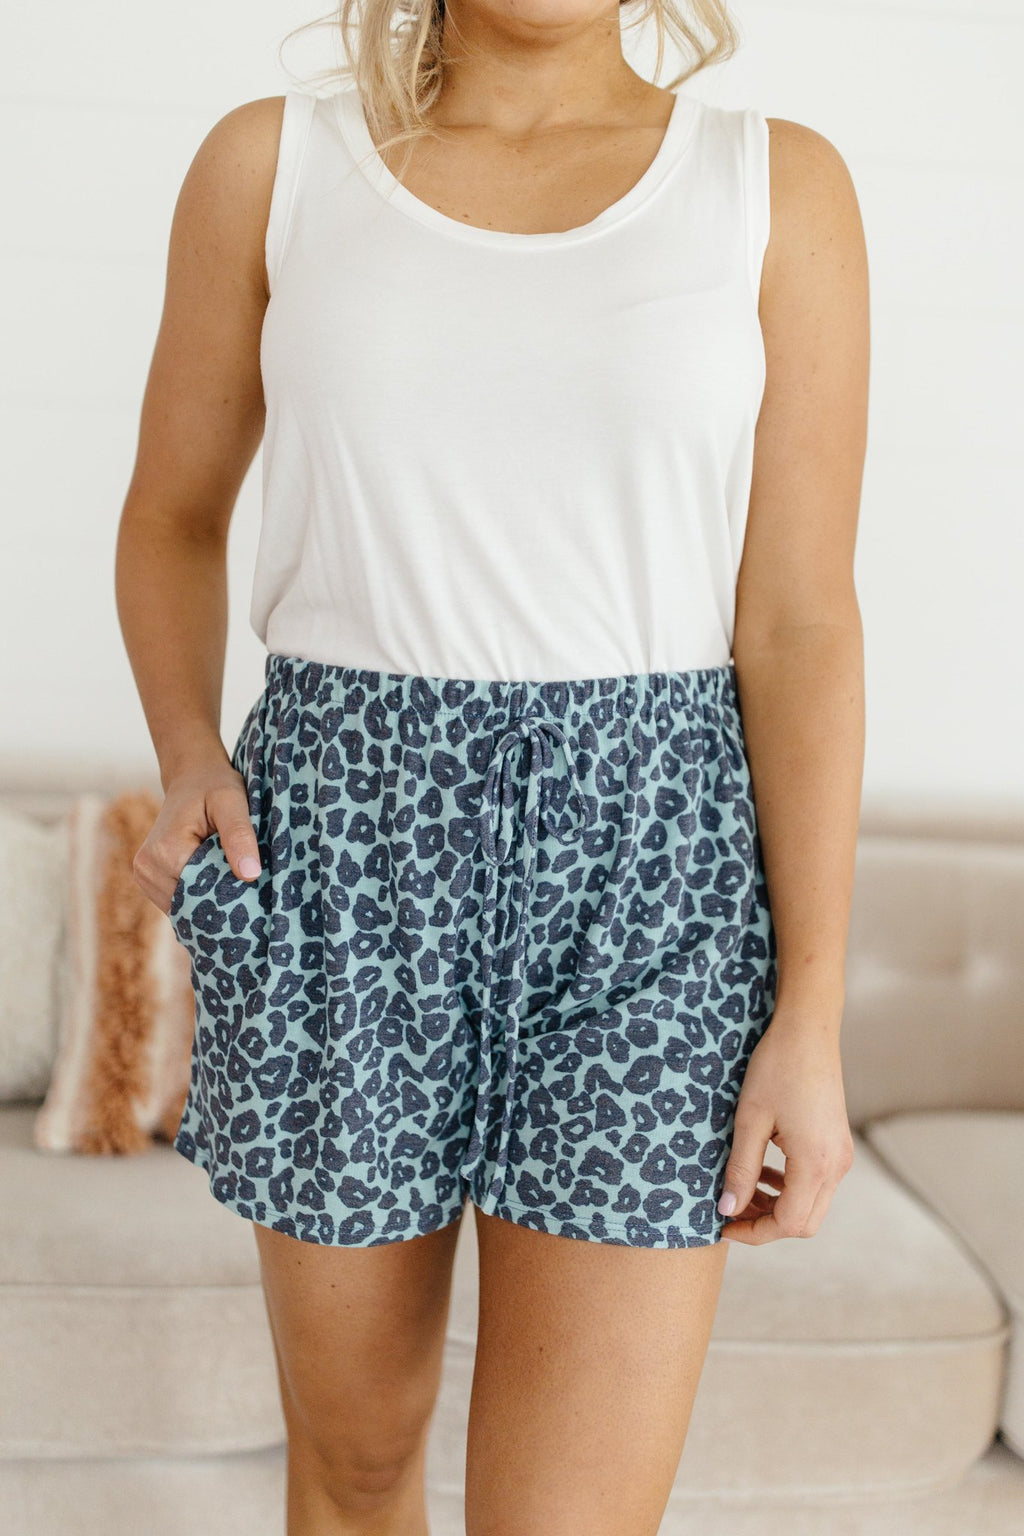 Feelin' Blue Lounge Shorts-1XL, 2XL, 3-2-2021, 3XL, Bottoms, Group A, Group B, Group C, Large, Made in the USA, Medium, Small, XL, XS-Womens Artisan USA American Made Clothing Accessories